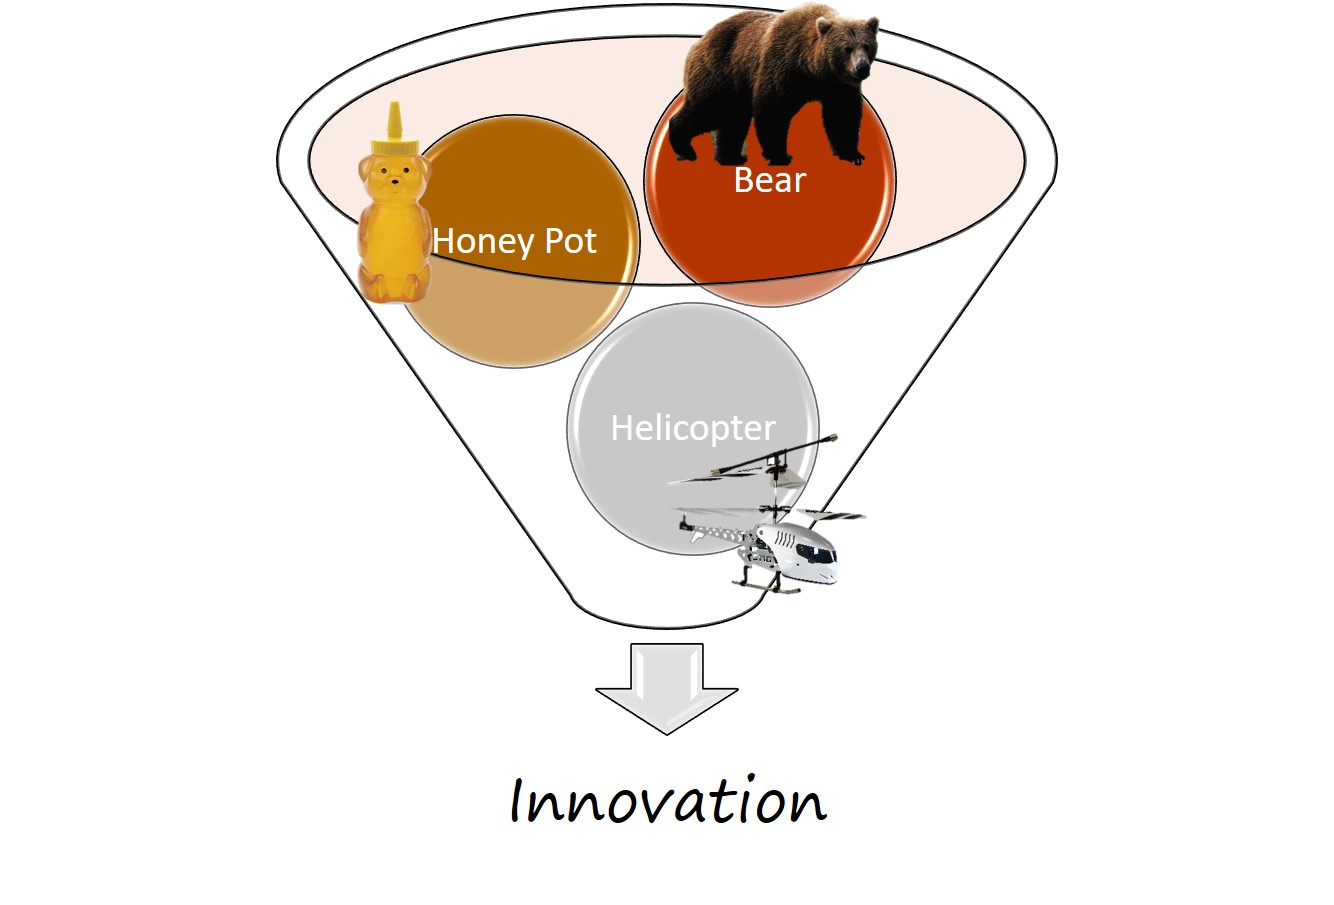 diagram of a bear, honey, and a helicopter facilitating innovation.